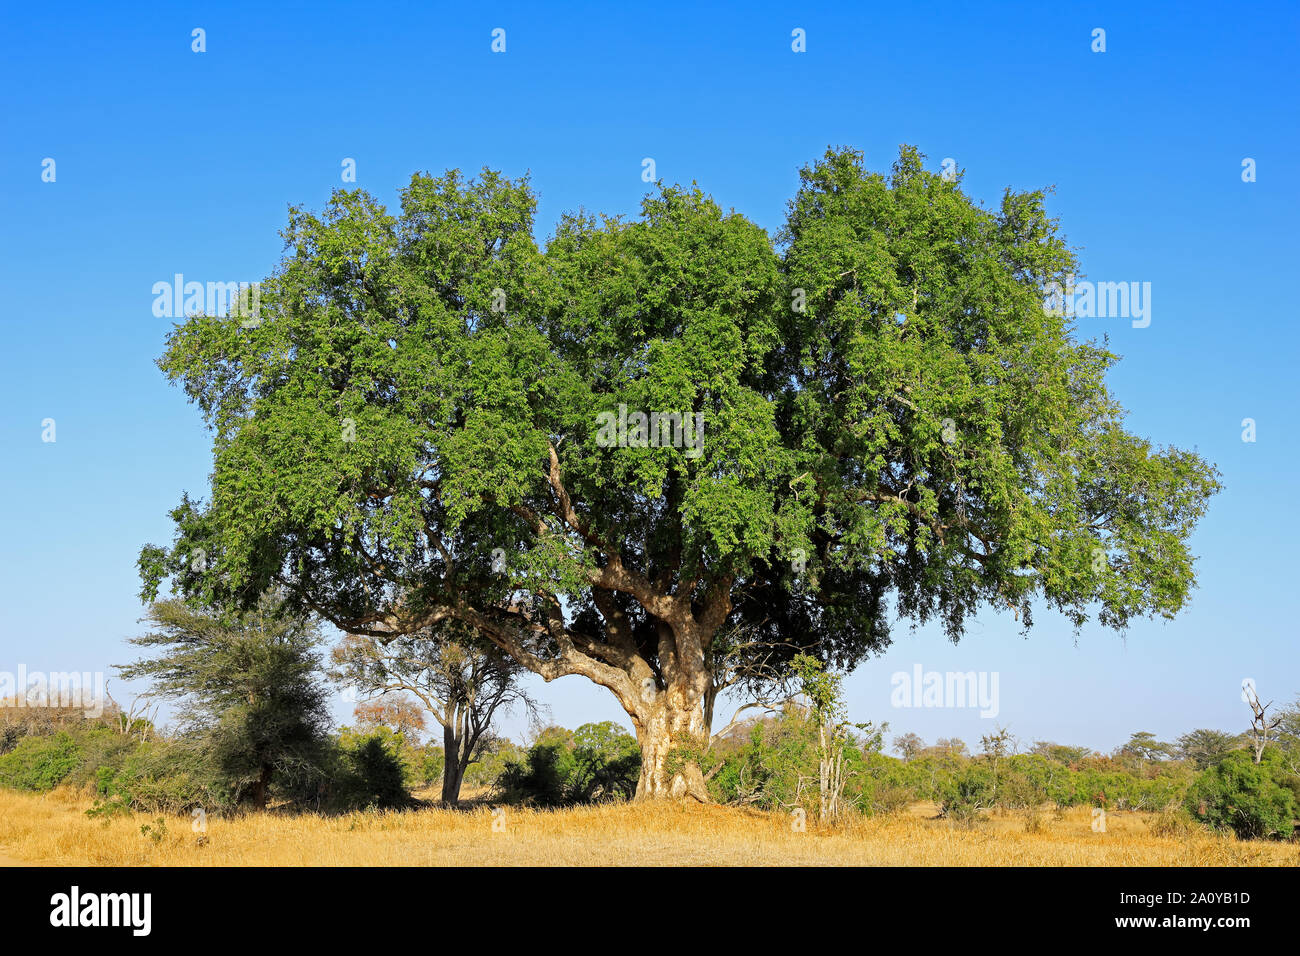 Large African sycamore fig tree (Ficus sycomorus), Kruger National Park, South Africa Stock Photo